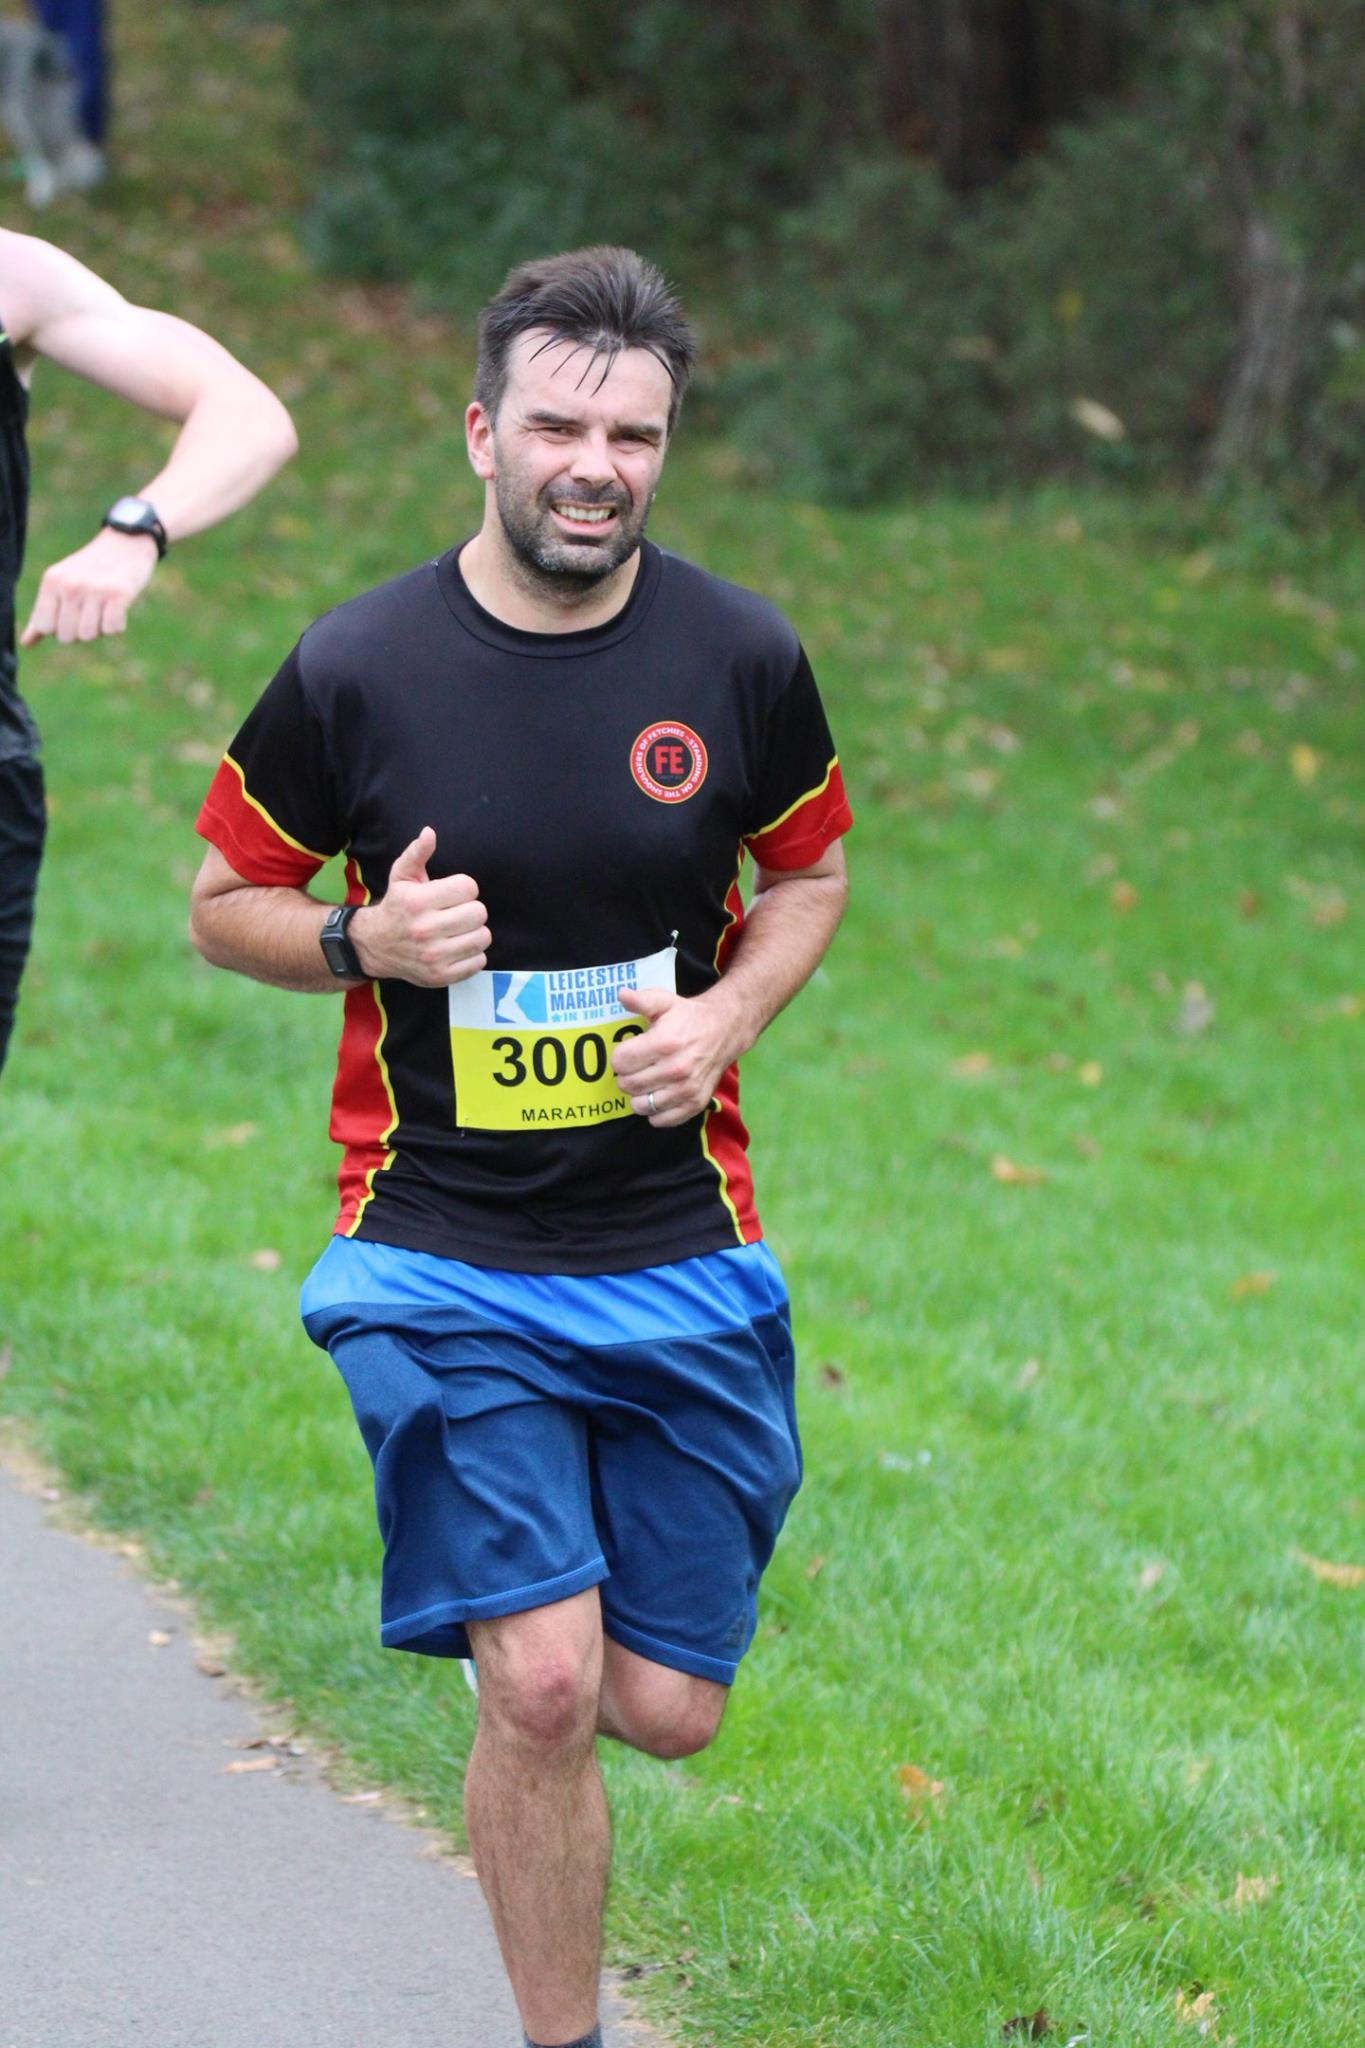 Running with a permanent thumbs up. Thanks Clive Mason for the photo!